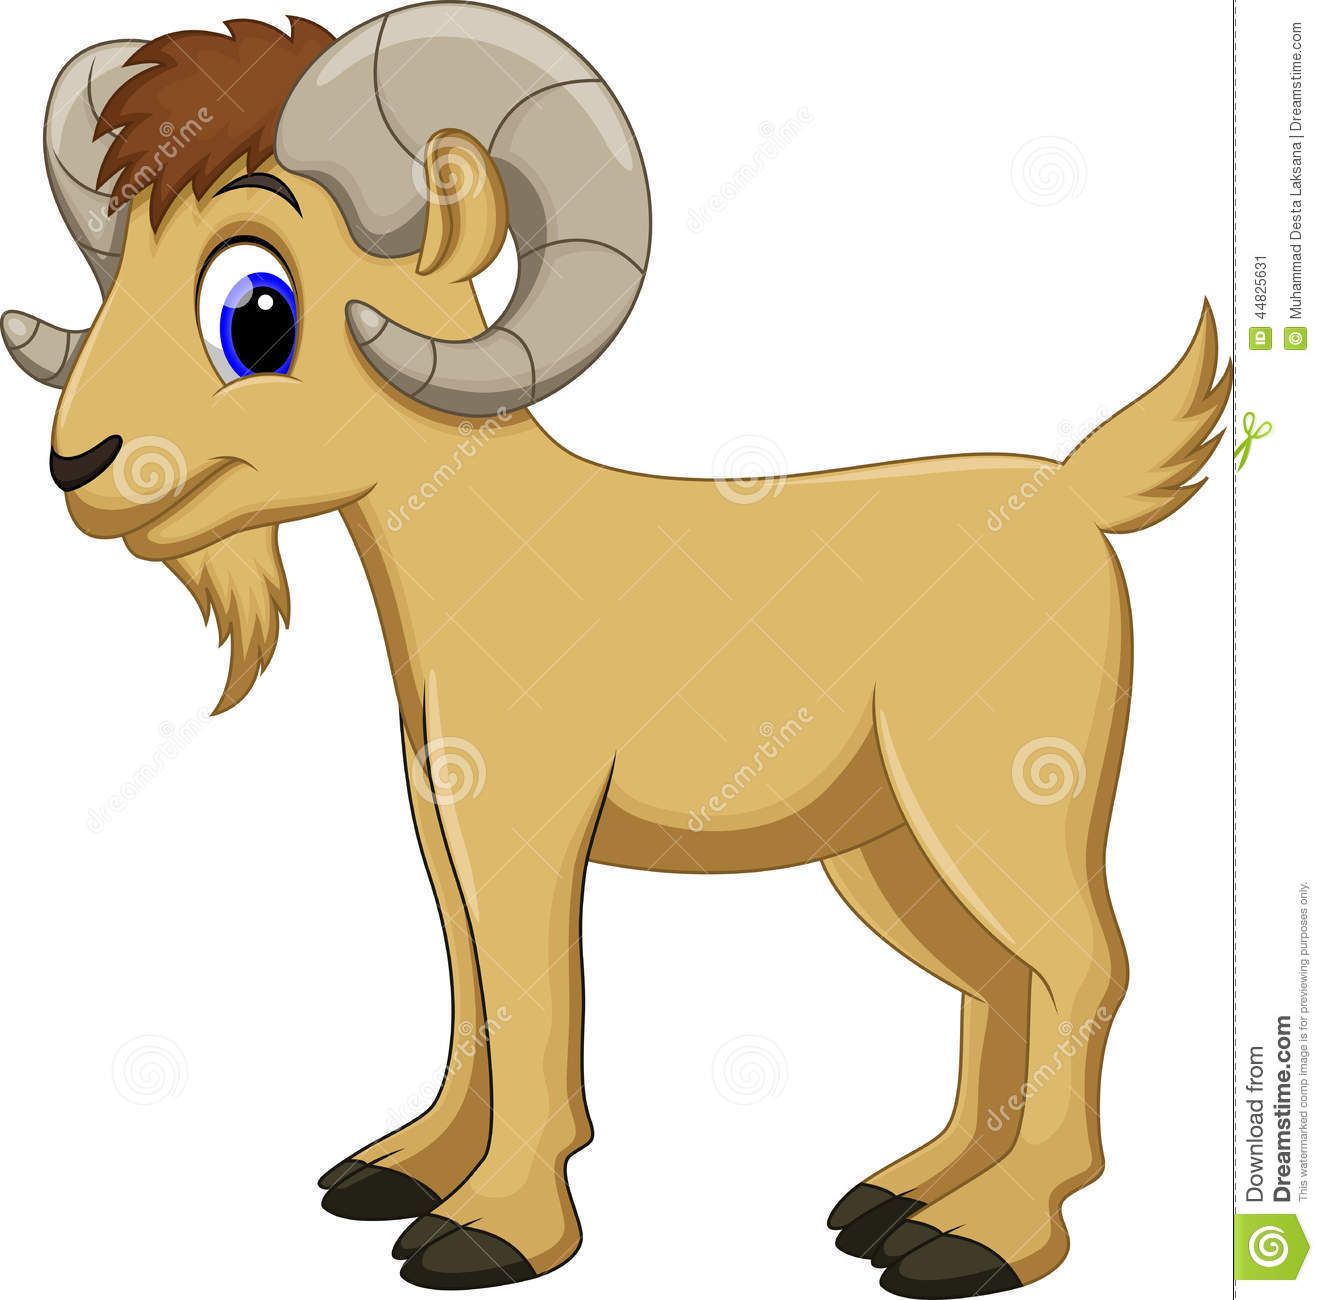 Cute Goat Cartoon Stock Illustration   Image  44825631